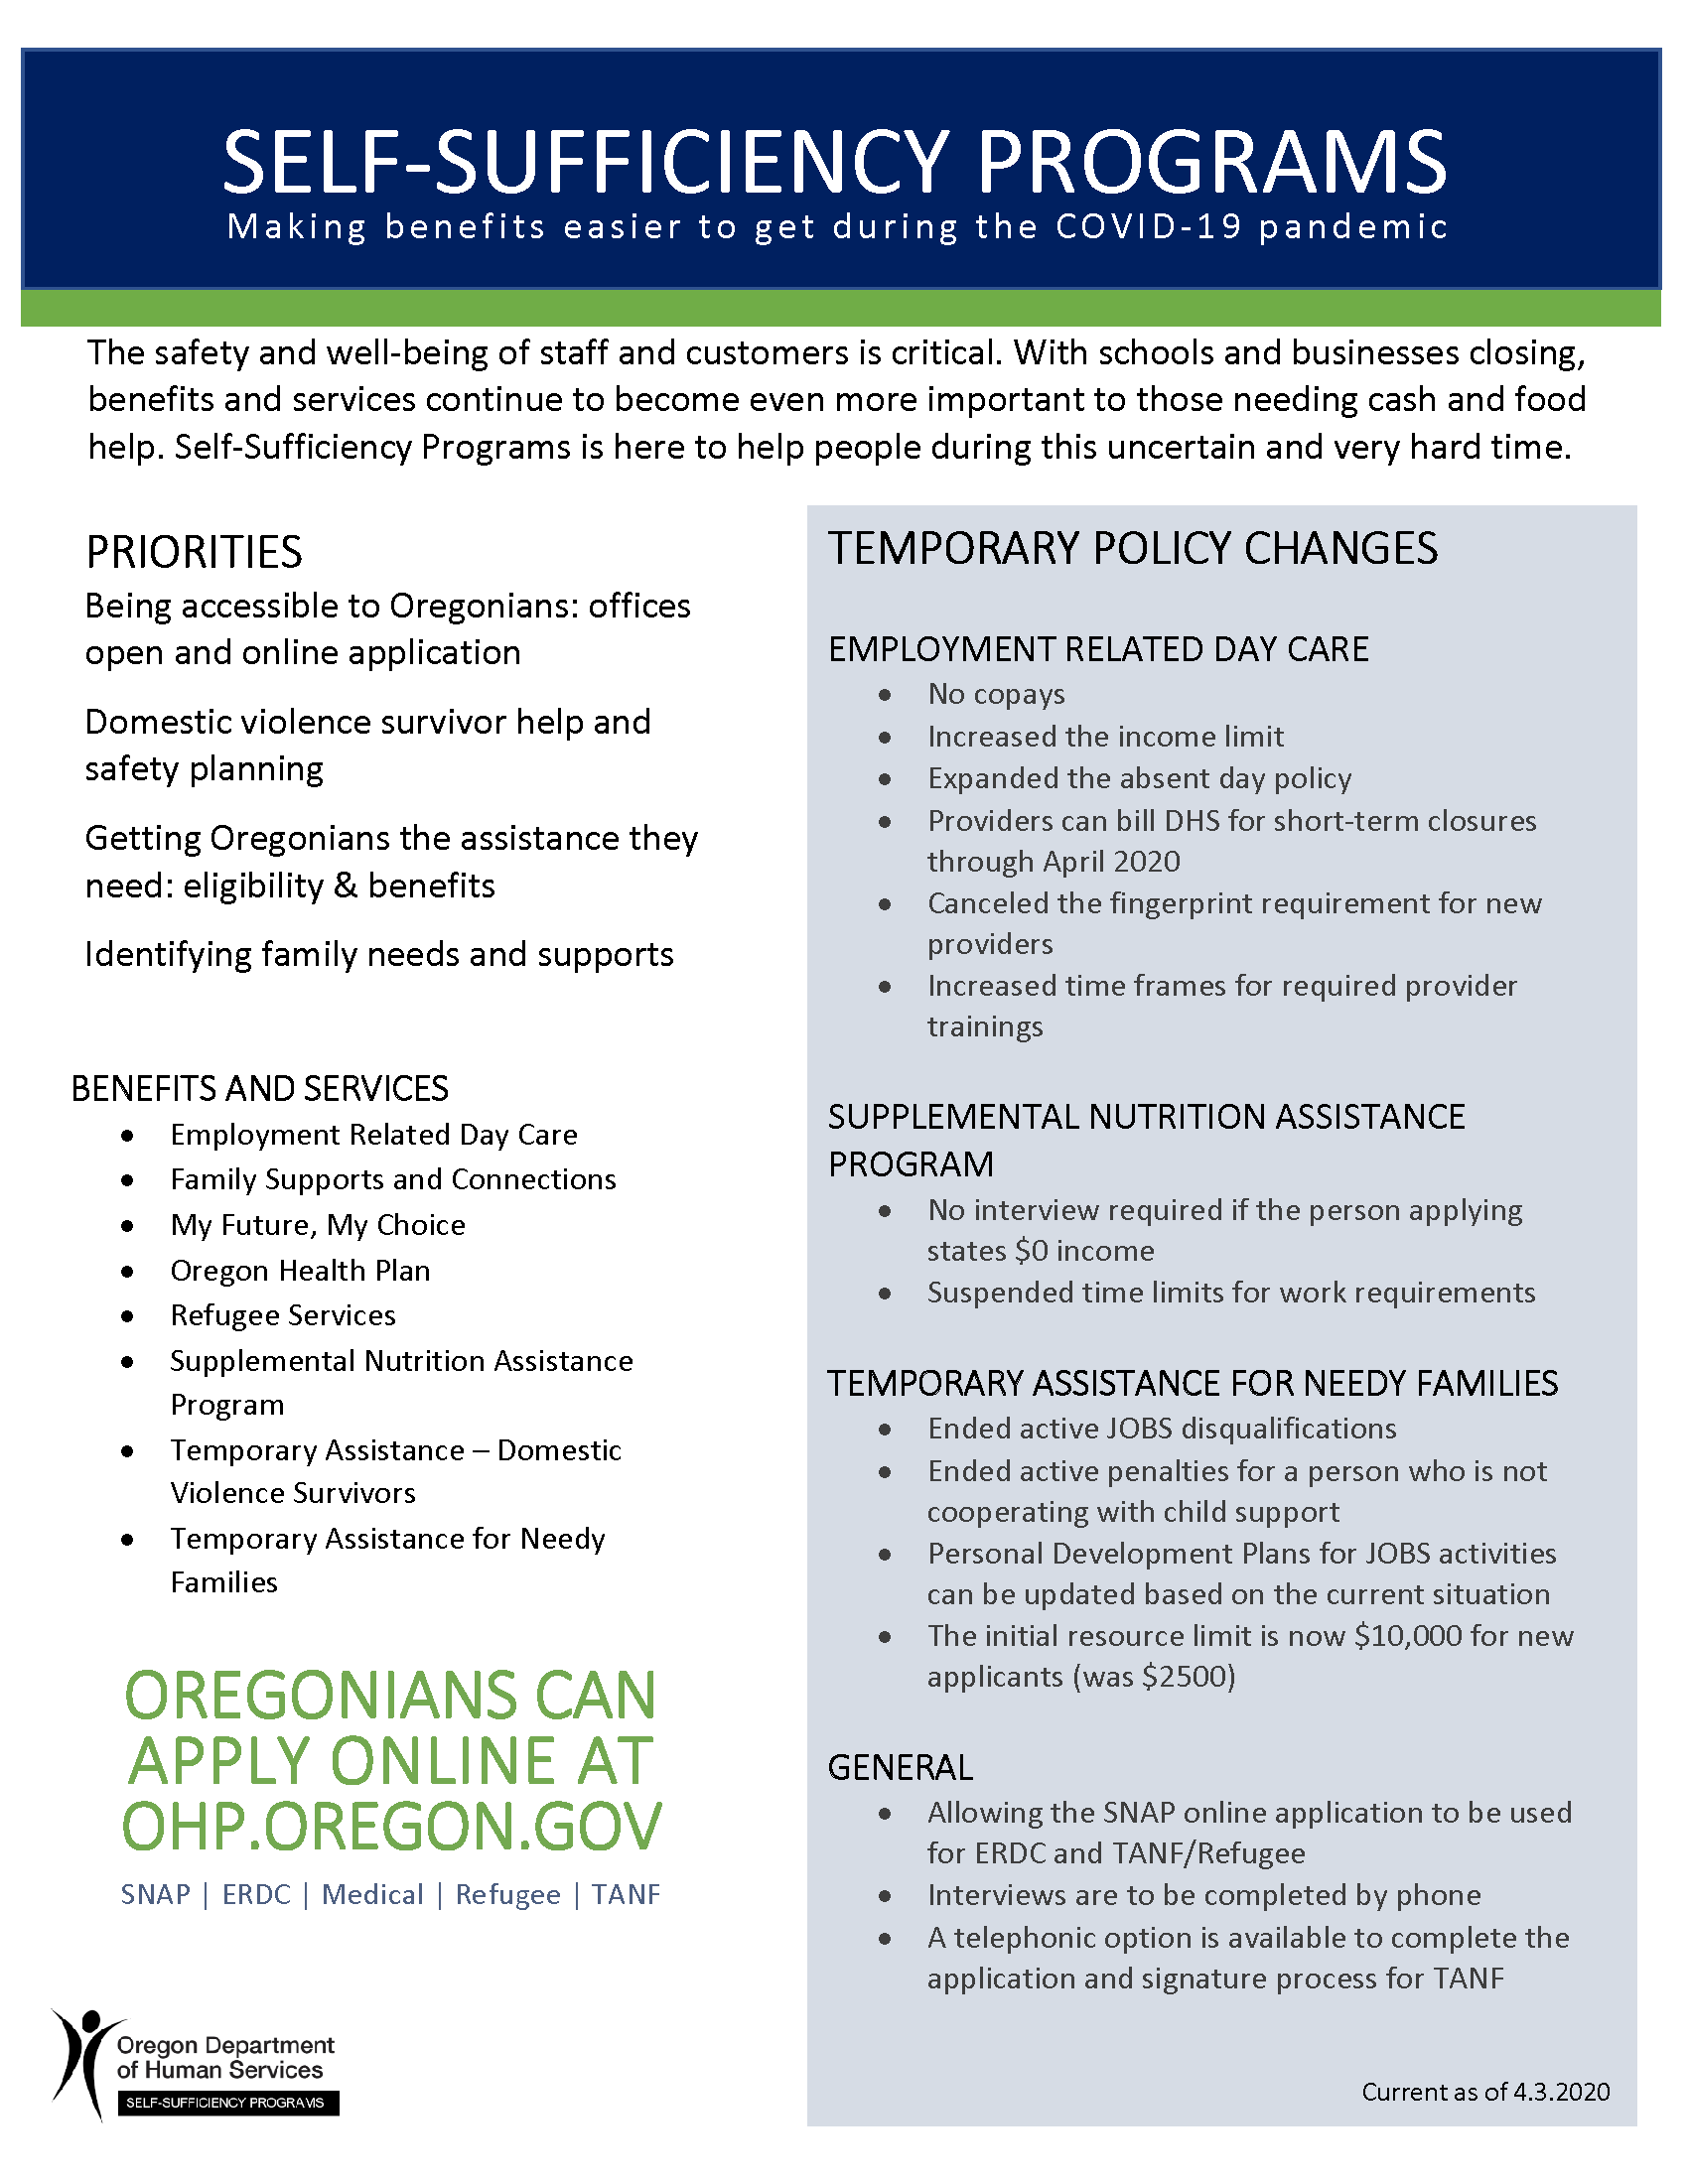 SSP COVID-19 Temporary Changes Fact Sheet-Final